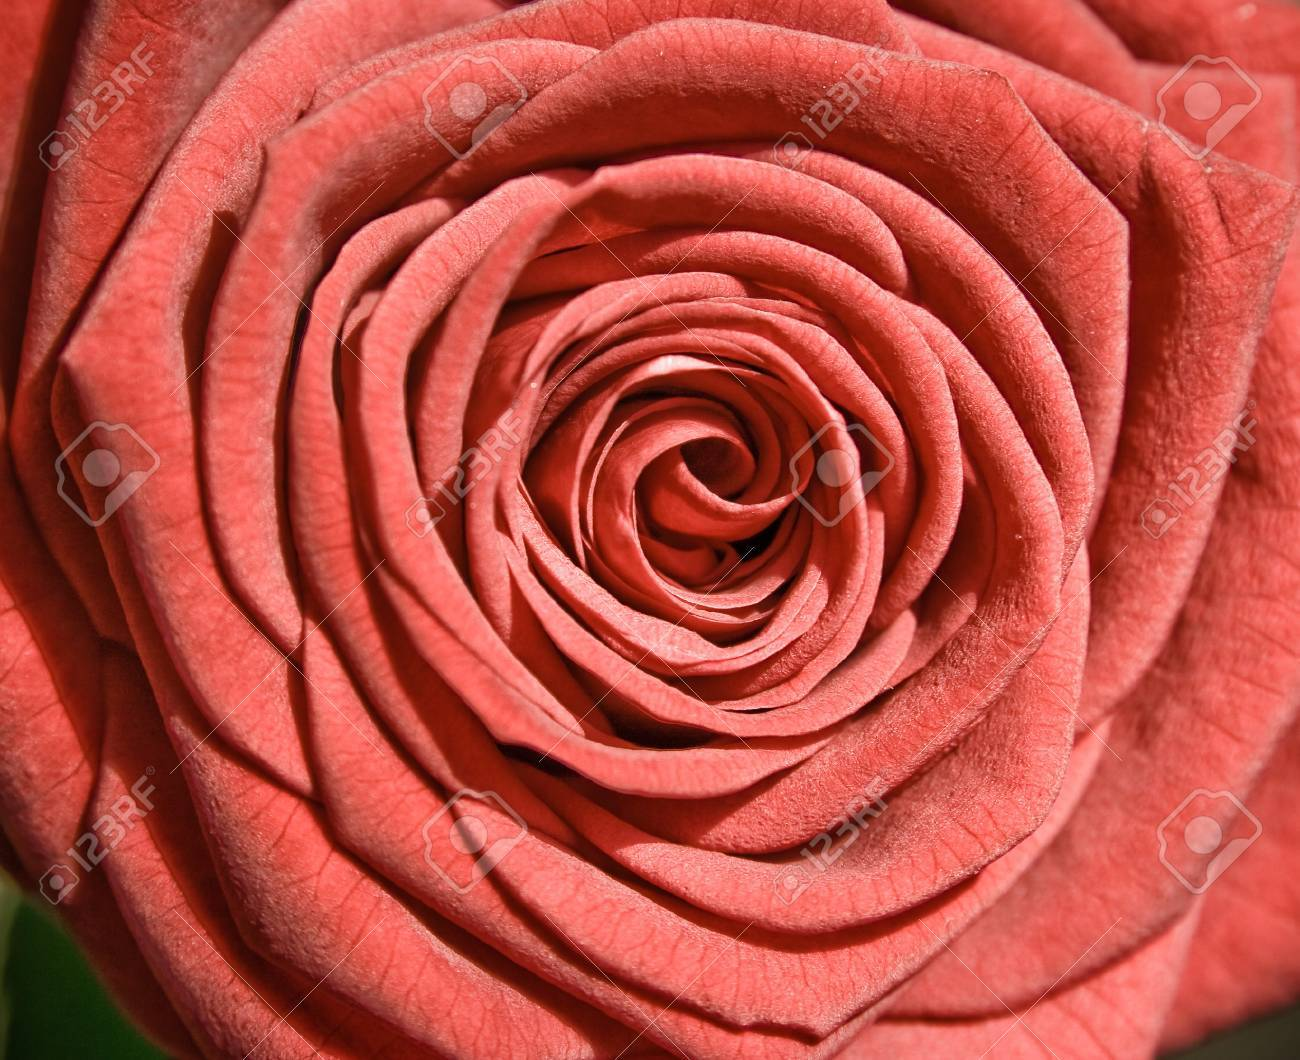 flower: red rose as postcard for example Stock Photo - 4235262